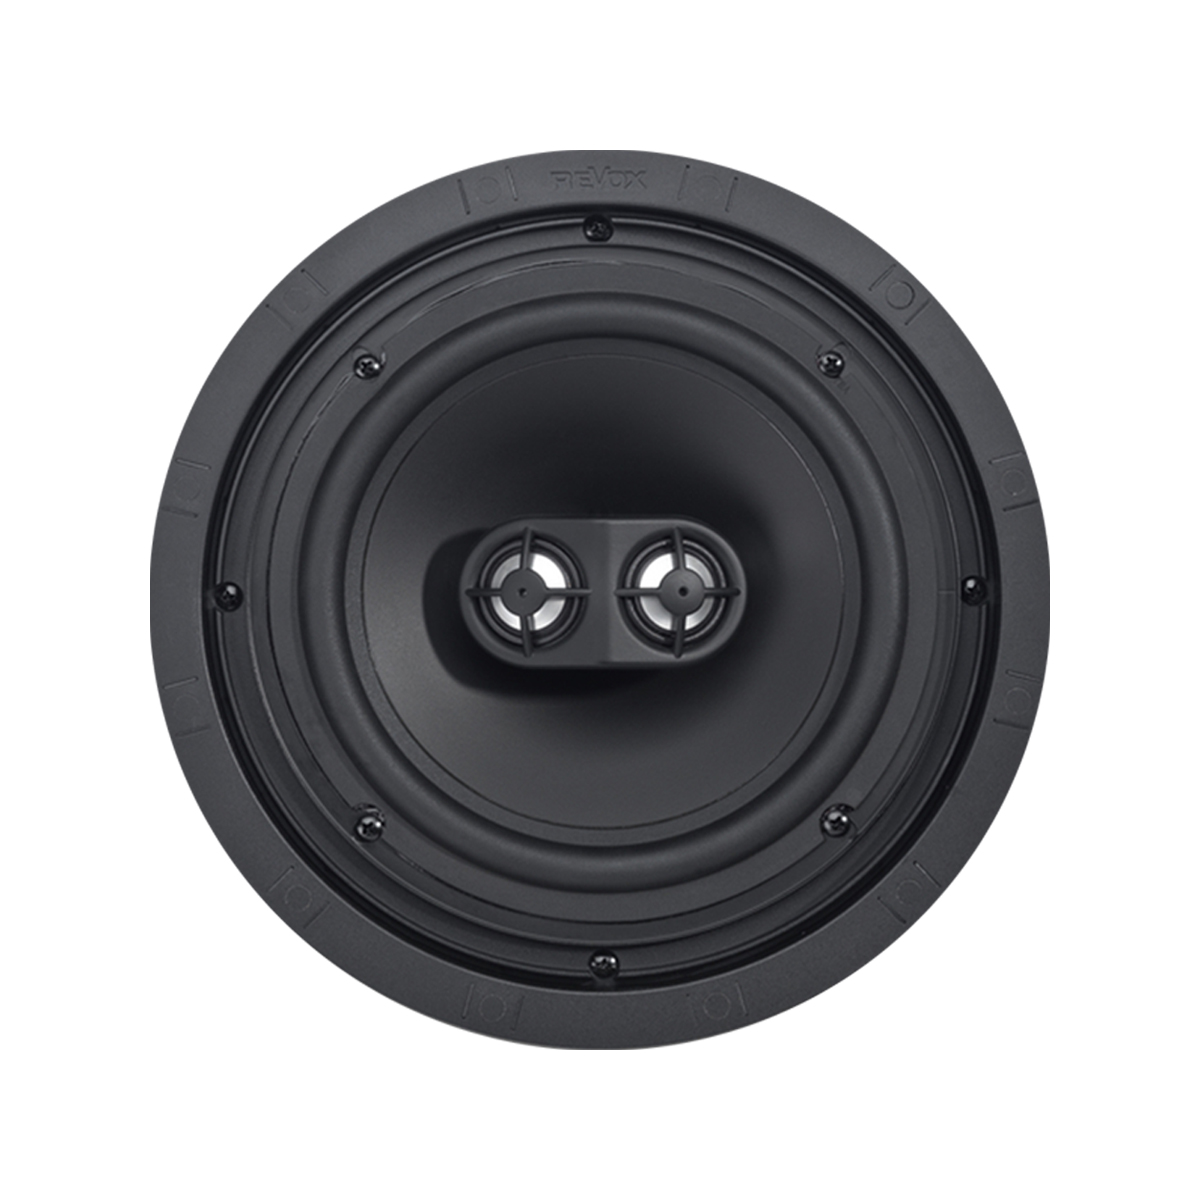 inwall-82-round-stereo